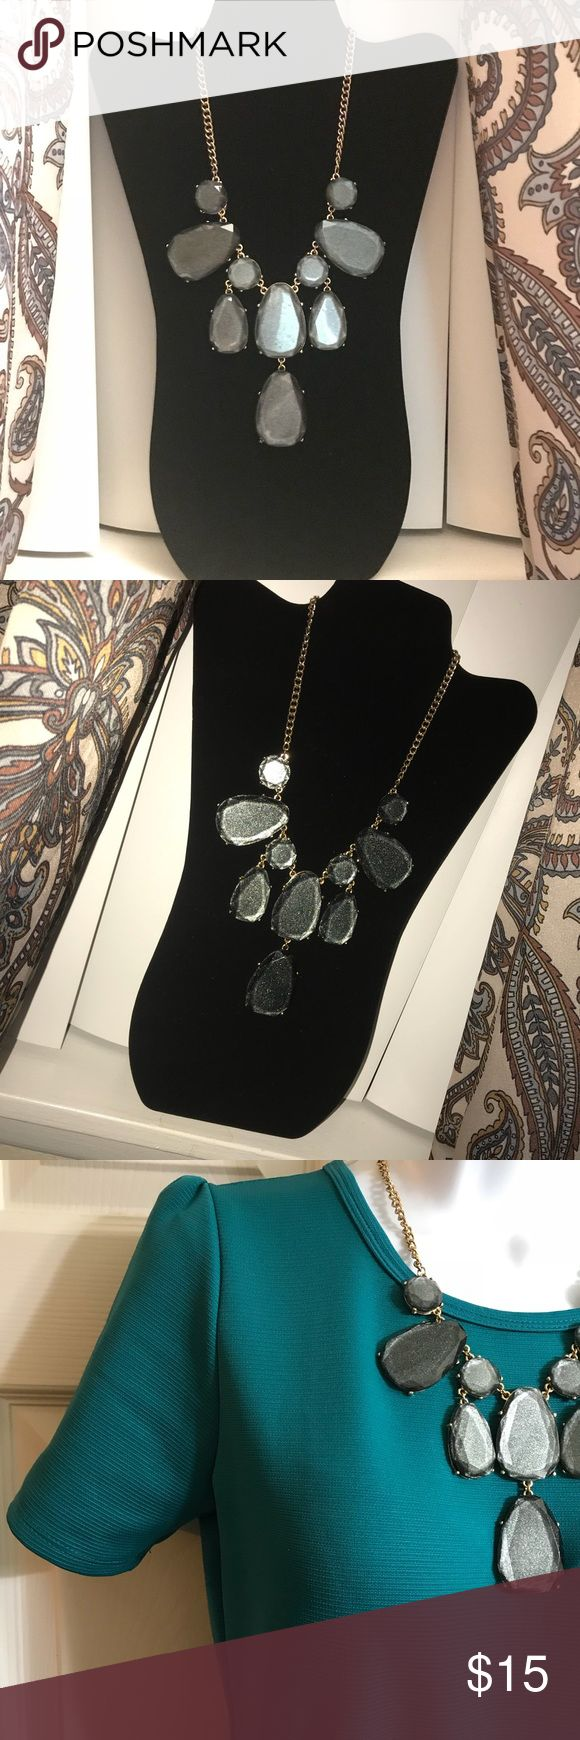 Beautiful necklace! Grey shimmering glass with gold chain. EUC Aldo Jewelry Necklaces